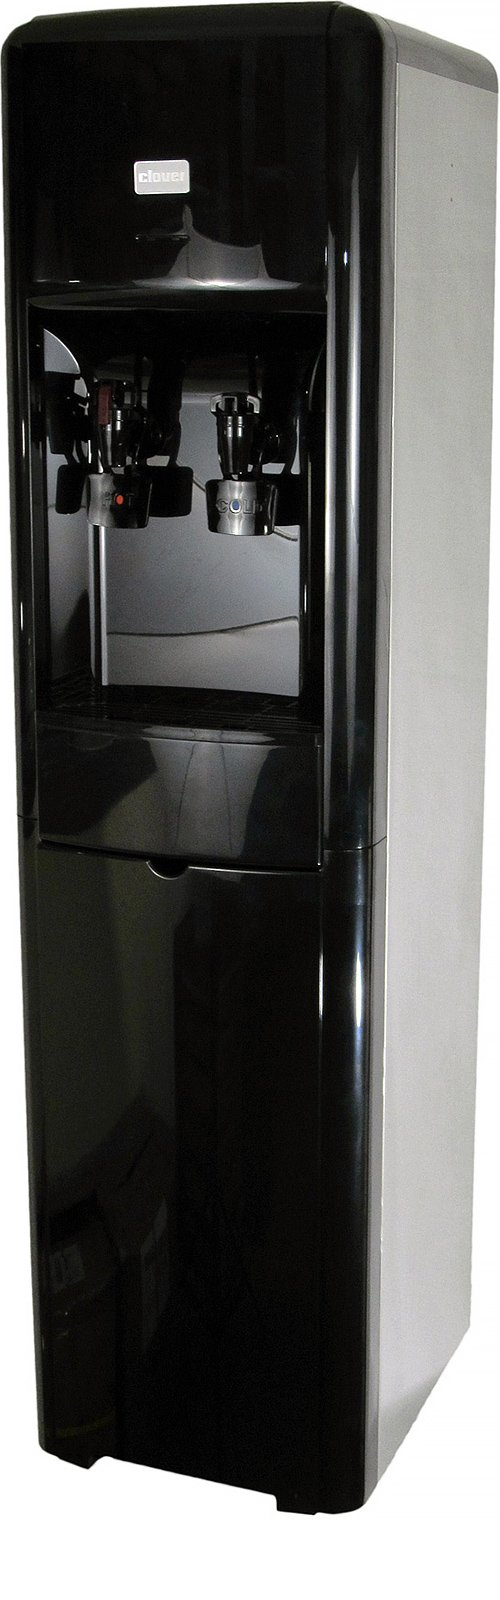 Clover D16a B Water Dispenser Hot And Cold Bottleless